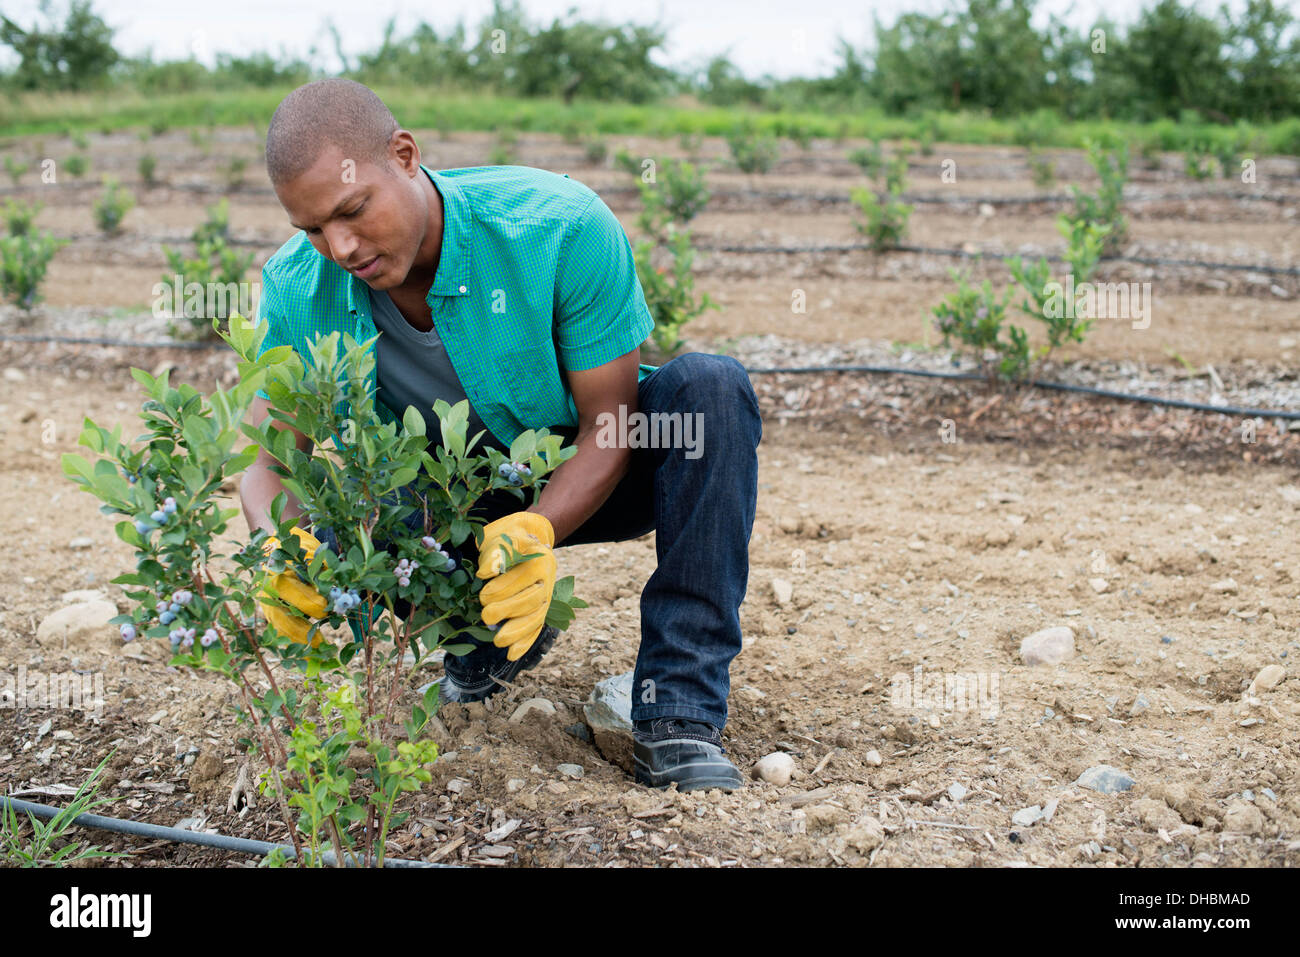 Organic fruit orchard. A man examining a row of blueberry shrubs. - Stock Image